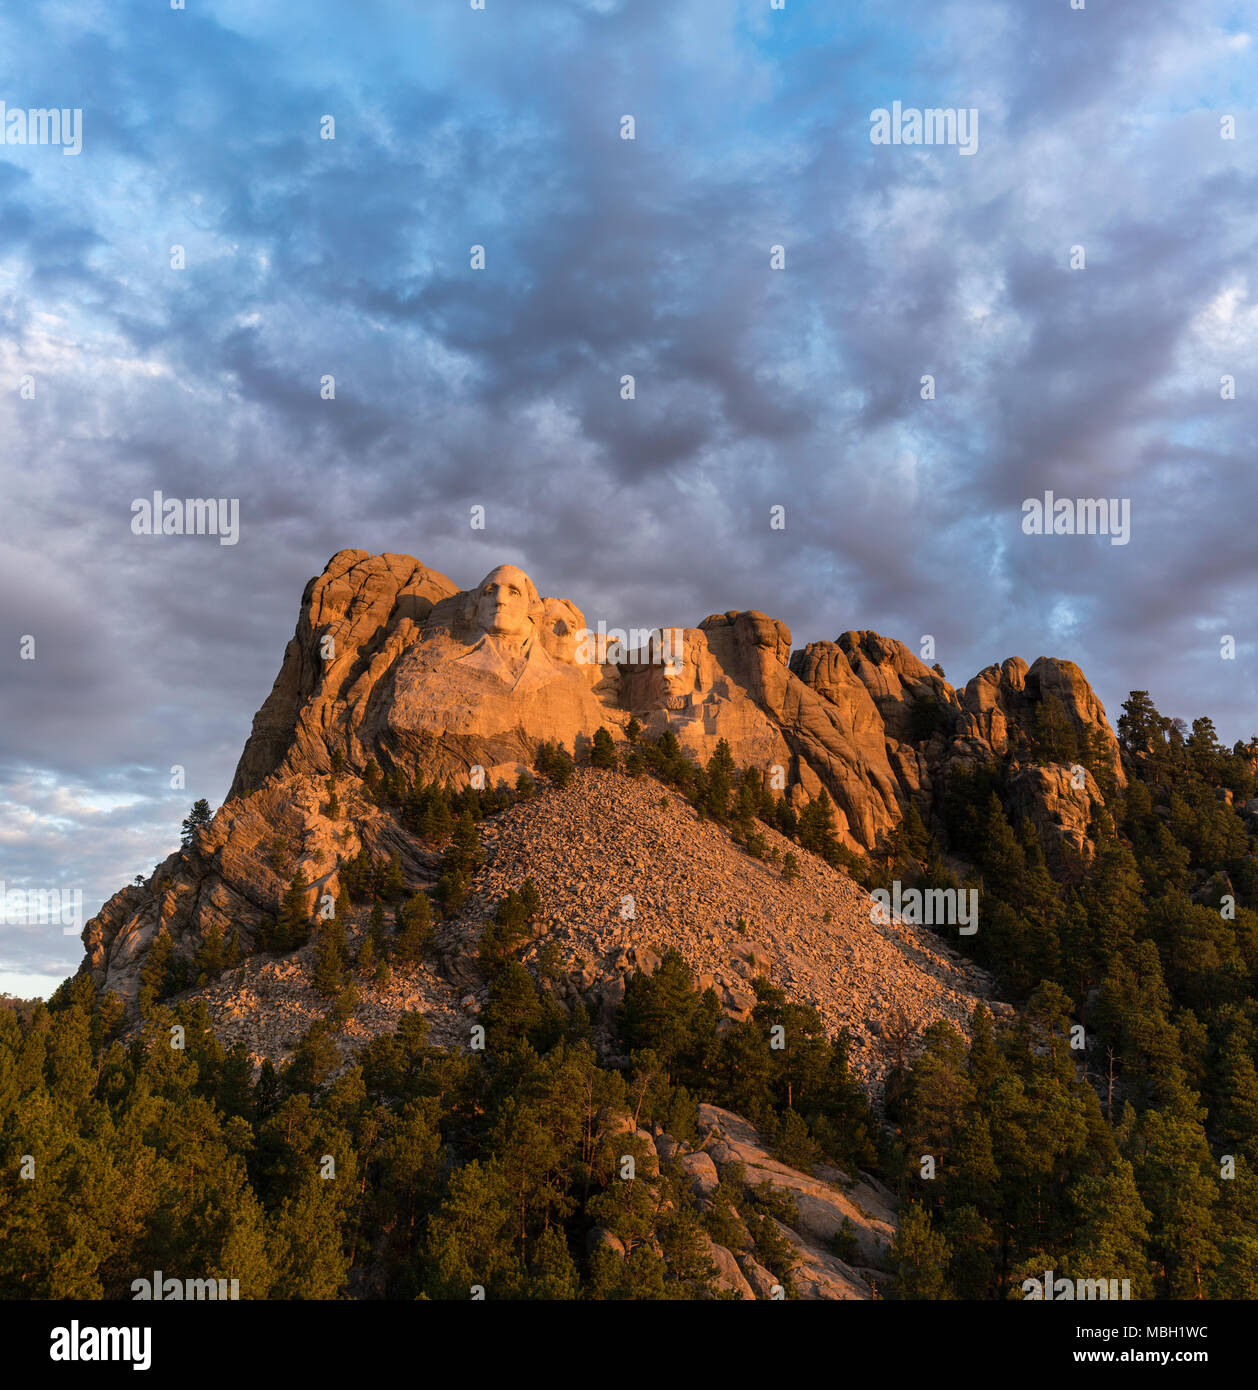 The faces of Washington, Jefferson, Roosevelt, and Lincoln at sunrise on Mount Rushmore in South Dakota. Stock Photo